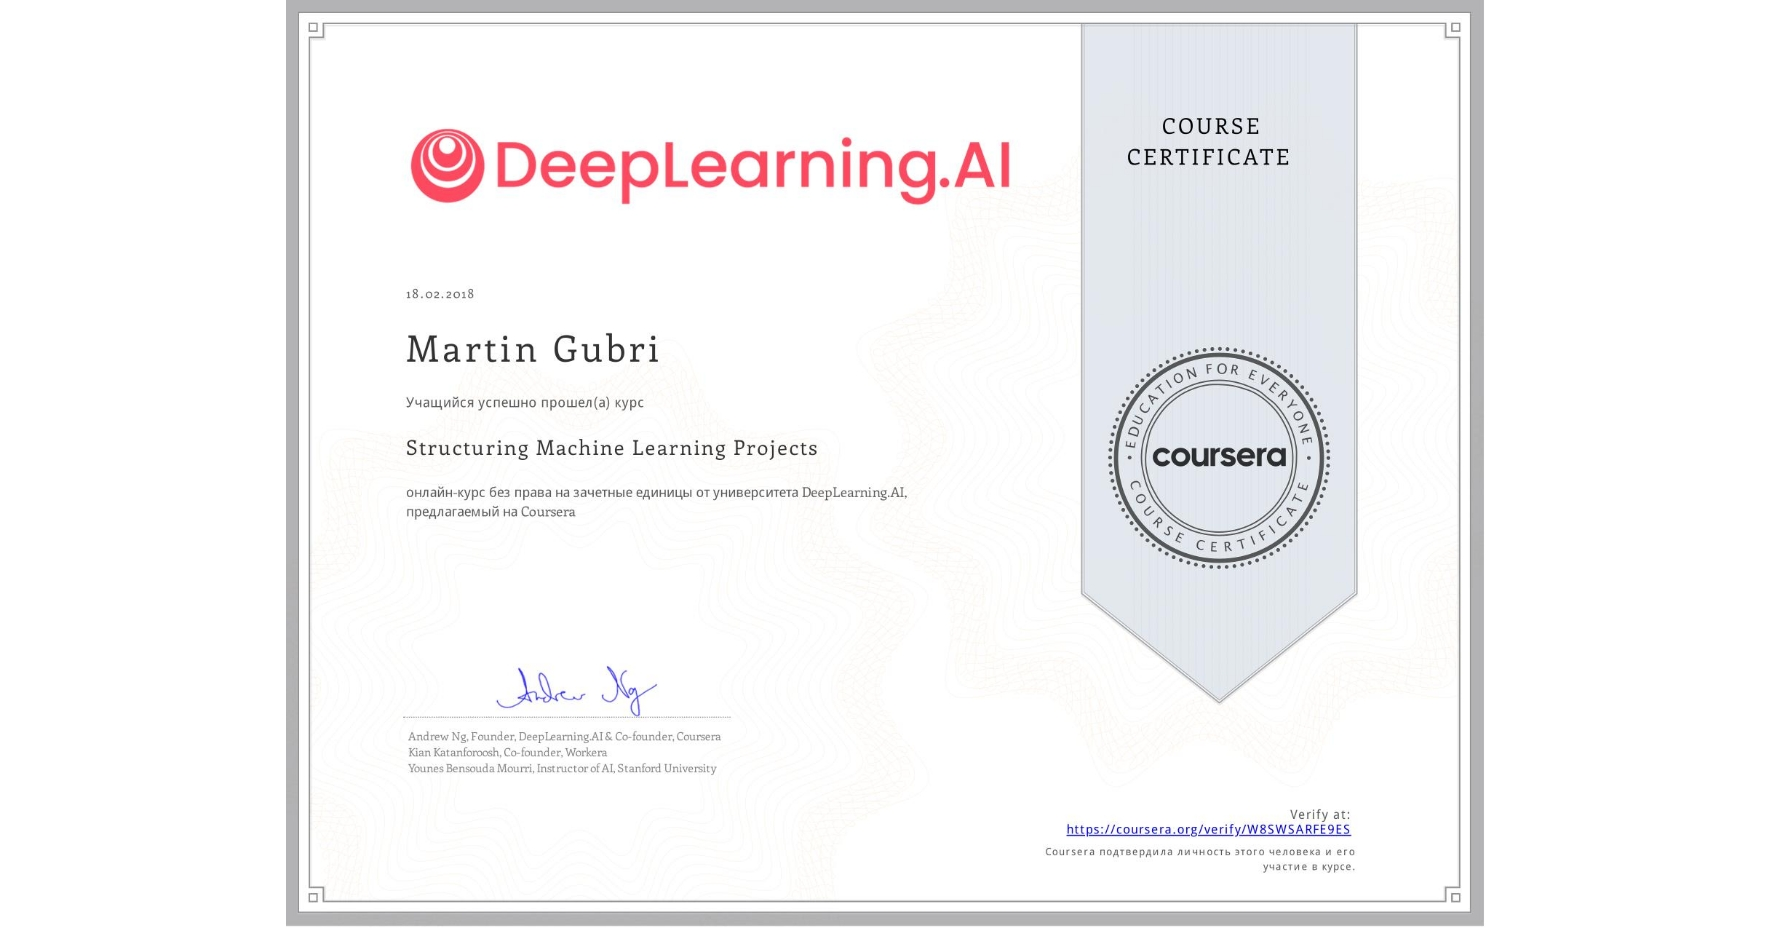 View certificate for Martin Gubri, Structuring Machine Learning Projects, an online non-credit course authorized by DeepLearning.AI and offered through Coursera